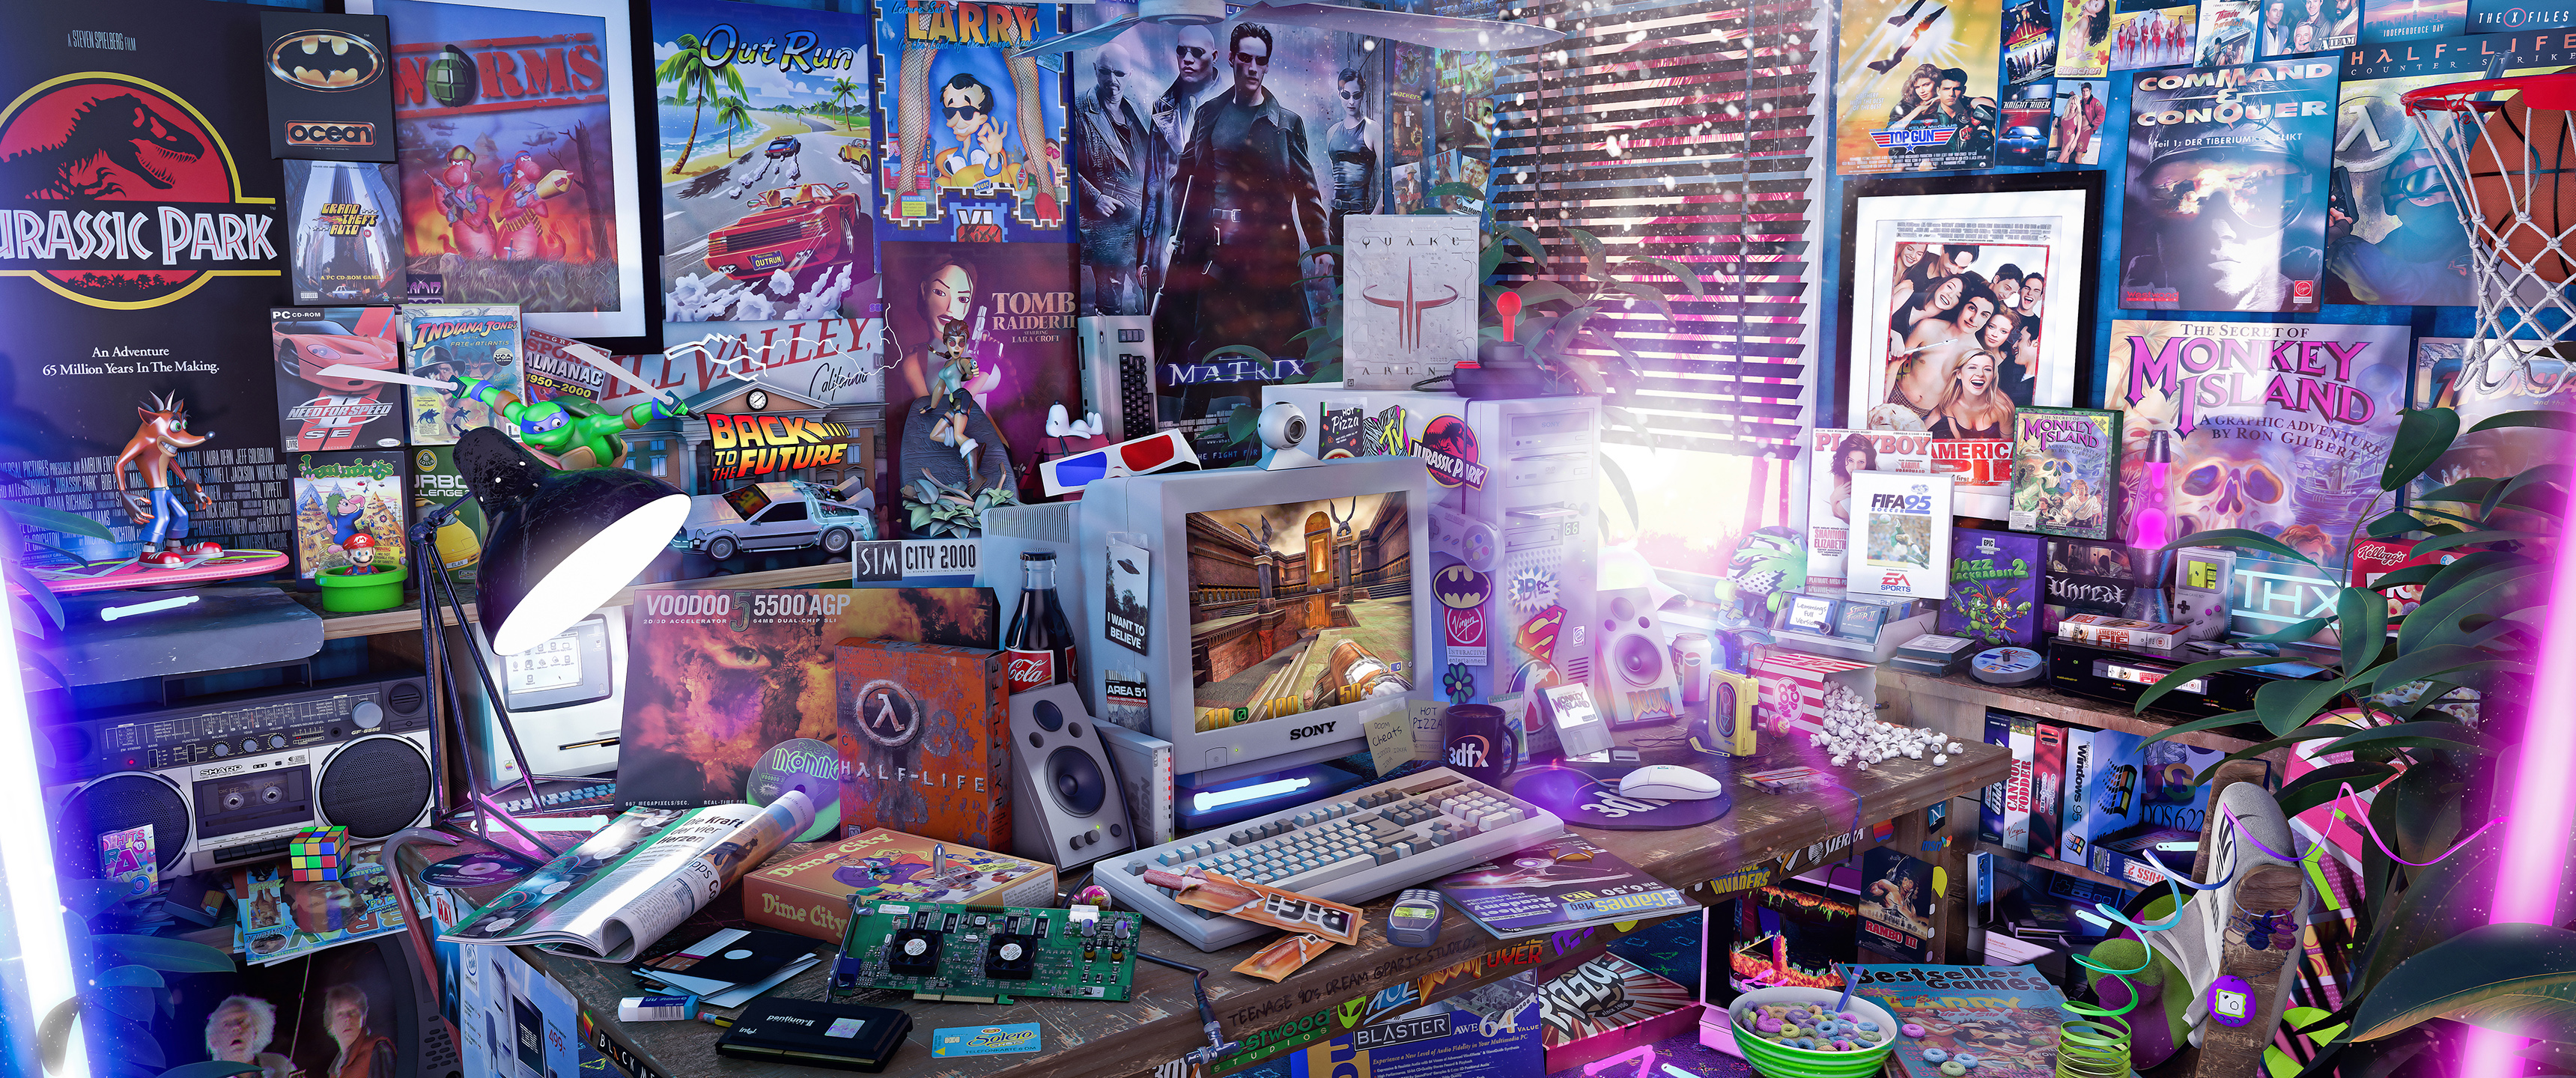 Jurassic Park,Crash Bandicoot,Ghettoblaster,Hoverboard,Hoverboard,BravoHits 13,Zauberwürfel,Bravo 23 05.1990,Apple Macintosh,Half-Life Crowbar,PCGH 11/2000,3dfx Voodoo5 5500,Dime City,9 mm,Apple,Half-Life,Incoming,Intel Pentium II,Telefonkarte 6DM,Chupa Chups,Chupa Chups,BiFi,Soundblaster AWE 64,CokaCola,Pepsi,Lara Croft,Doom Cheats,Tomb Raider II,Logitech Mouse M-M35,IBM Keyboard,ELSA ISDN Modem,Sim City 2000,Hot Pizza,Quake 3 Arena,Quake 3 Arena Q3DM7,ICQ,3dfx Splash,Counterstrike,Counterstrike,Popcorn,Mario,Lemmings,Lemmings,Lemmings,Need for Speed II SE,Grand Theft Auto,Worms,Out Run,Indiana Jones and the Fate of Atlantis ,Sport Almanac,Leonardo Teenage Mutant Ninja Turtles,VOBIS,Der weiße Hai,Floppy 5¼,Radiergummi,Bleistift,Nokia 3310,Virgin Interactive,3D-Brille,Snoopy,Commodore 64 ,Commodore 64,Lotus Turbo Challenge 2,Zurück in die Zukunft,Leisure Suit Larry 1: In the Land of the Lounge Lizards,Matrix,Webcam,Batman,Batman,Superman,50OHM BNC,MTV,Competition Pro Joystick,Nintendo SNES Controller,Monkey Island Dos,Turbo,Pioneer Slot-in,Sony Walkman WM-F45,Kassette,PCGAMES 10/97,Rambo III,Skateboard,Street Figher II,Playboy Shannon Elizabeth Nadia,FIFA SOCCER 95,Jazz Jackrabbit 2,Festplate IDE,American Pie,American Pie VHS,VHS-Recorder,Monkey Island,Nintendo,KELLOGG'S FROOT LOOPS,KELLOGG'S FROOT LOOPS,Unreal,DOOM,Bestseller Games 12,Leisure Suit Larry 6: Shape Up or Slip Out!,Star Trek,Schnuller,Tamagotchi,adidas,Klettball,Regenbogen Spirale,Area 51,Akte X,Basketball,Indiana Jones und der letzte Kreuzzug,Lava Lampe,Monkey Island,Command & Conquer,A-Team,Thunder in Paradise,Knight Rider,Das fünfte Element,Top Gun,Blümchen,Baywatch,Baywatch,Independence Day,Need for Speed: Brennender Asphalt,Cannon Fodder,Command & Conquer Alarmstufe Rot,Windows 95,MS:DOS 6.22,Bleifuss 2,Nintendo Entertainment System,Marty McFly Cap,Terminator,Hackers,Speed,Marlboro,Universal Soldier,Alien,Alf,Fight Club,Armageddon,Manta Manta,Winamp,Westwood Studios,Pacman,Space Invaders,Sierra,MSN,AOL,Alien,Netscape,Knicklicht,Summer of 90's,THX